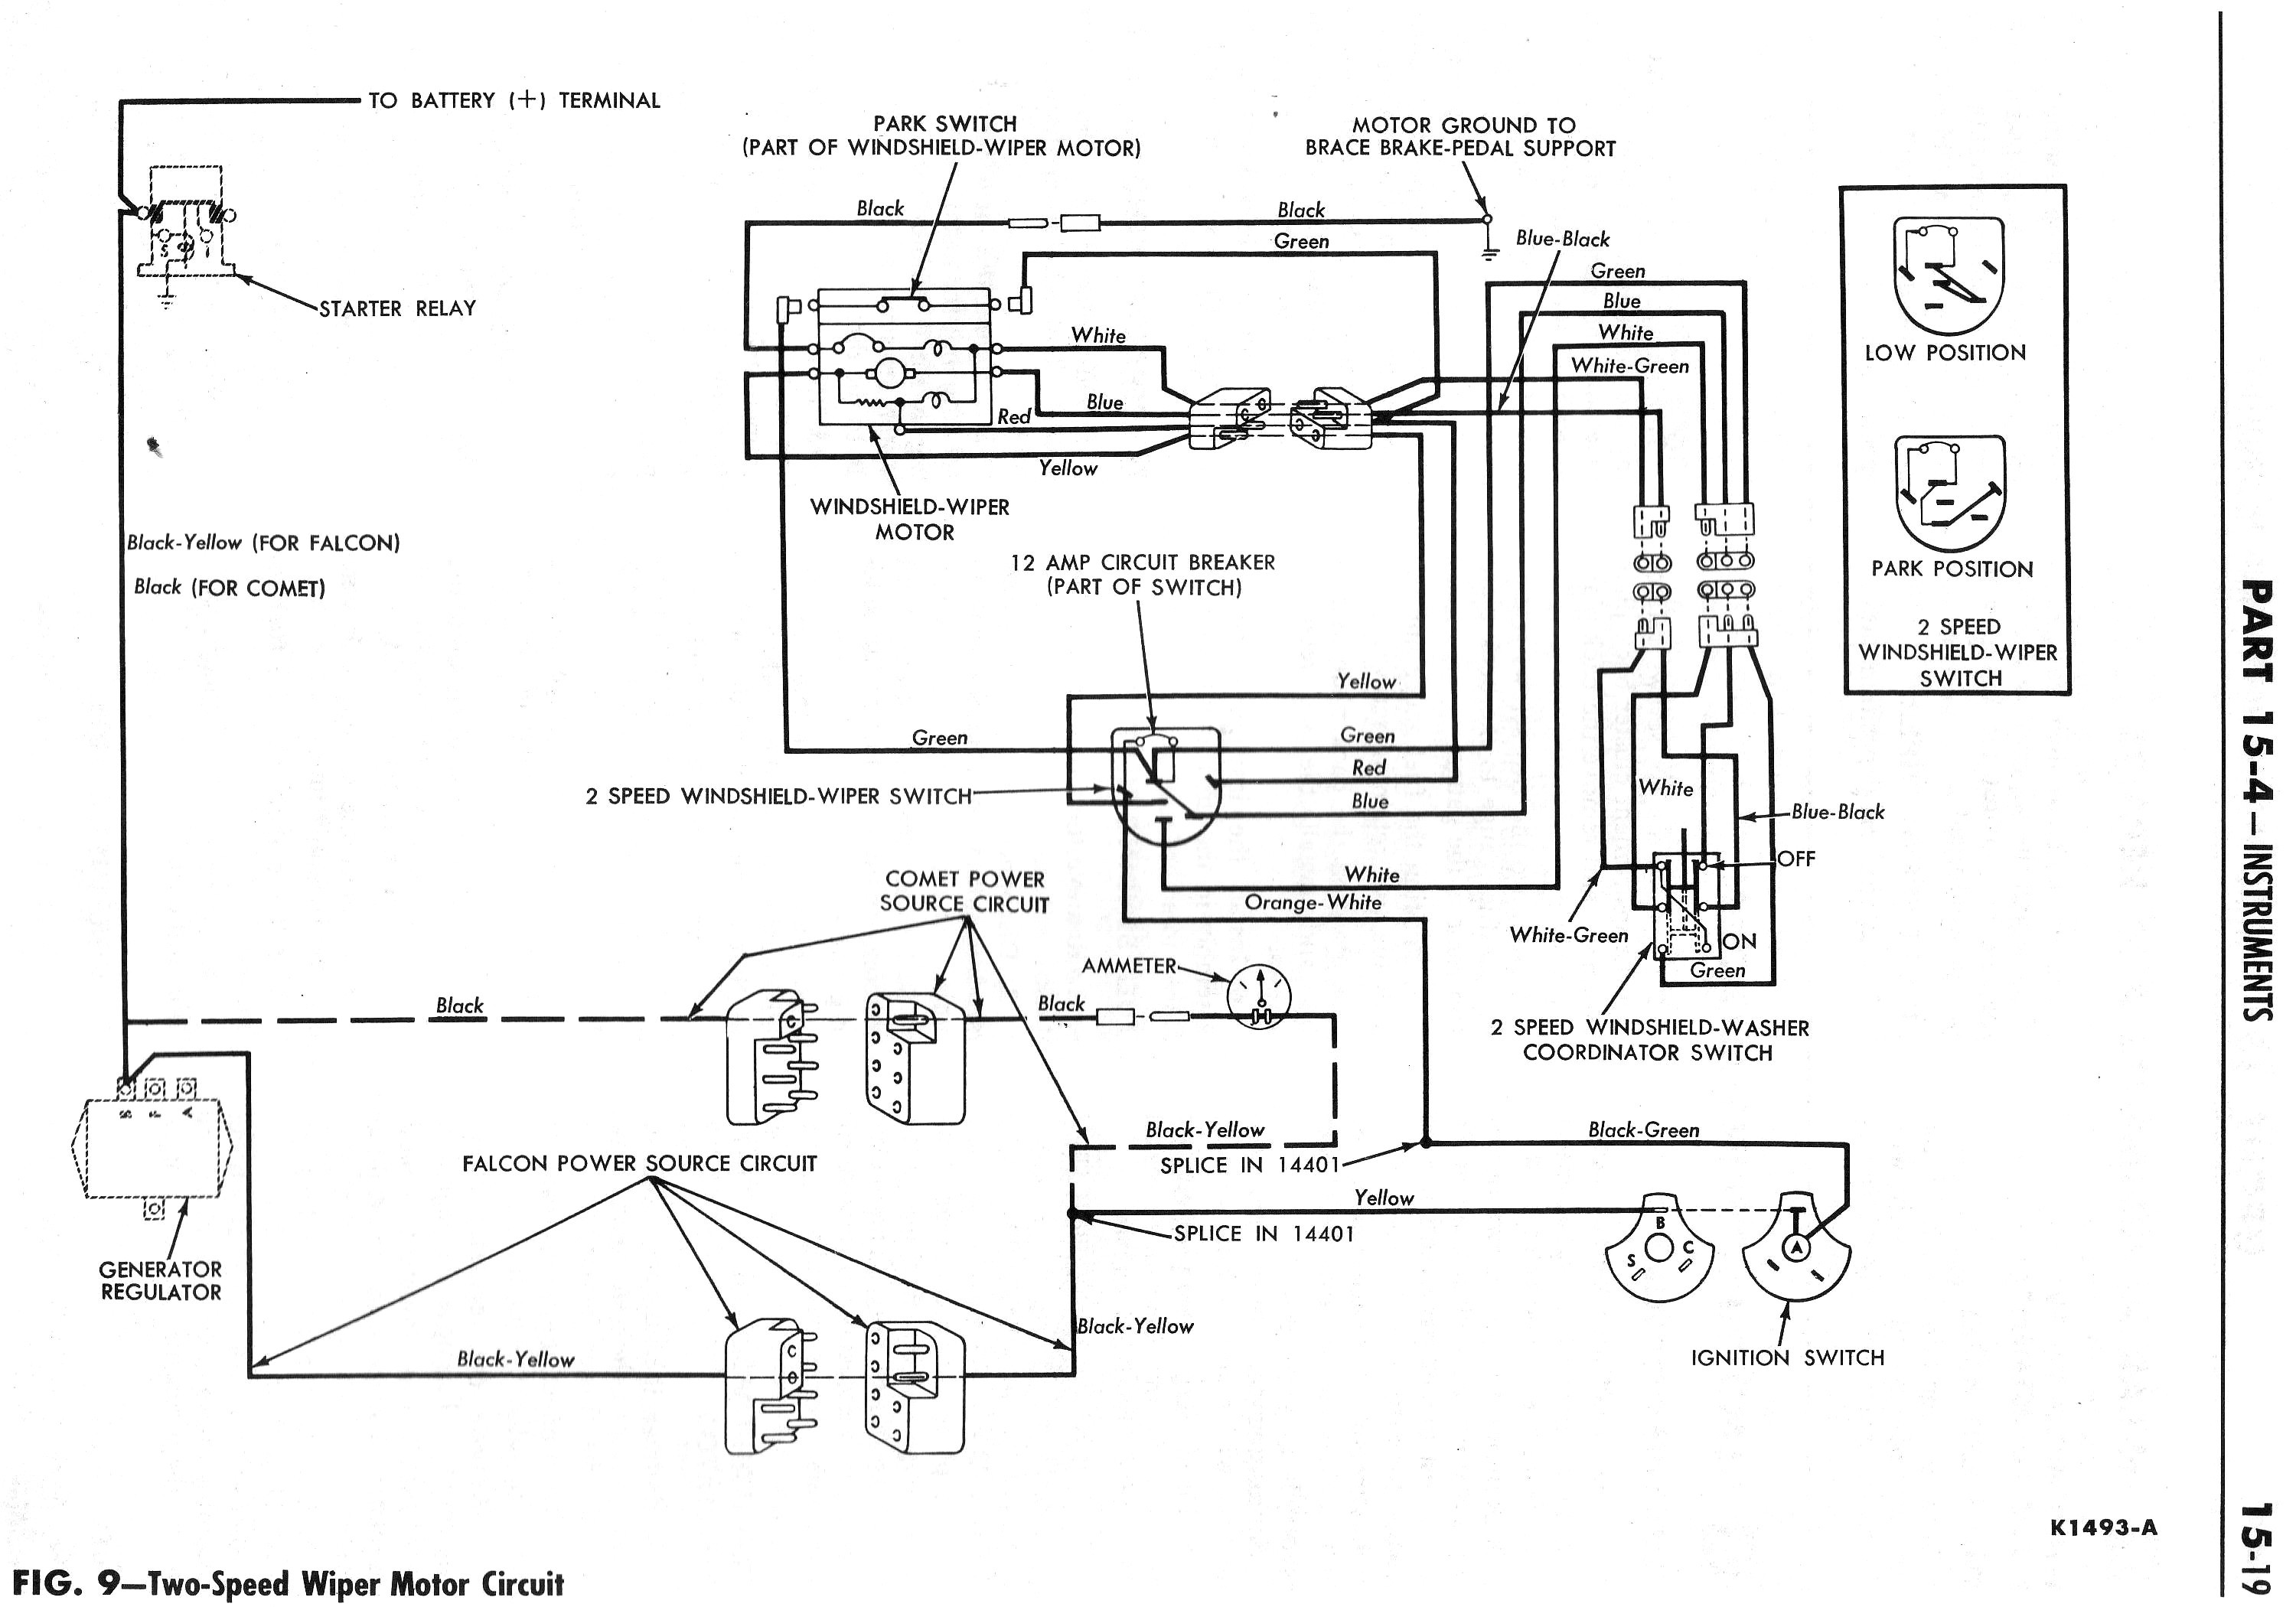 2003 Lincoln Ls V8 Engine Diagram Wiring Diagram 1965 Lincoln Wire Center • Of 2003 Lincoln Ls V8 Engine Diagram Fan Clutch 2002 Lincoln Ls Parts Diagram Wiring Diagram Services •